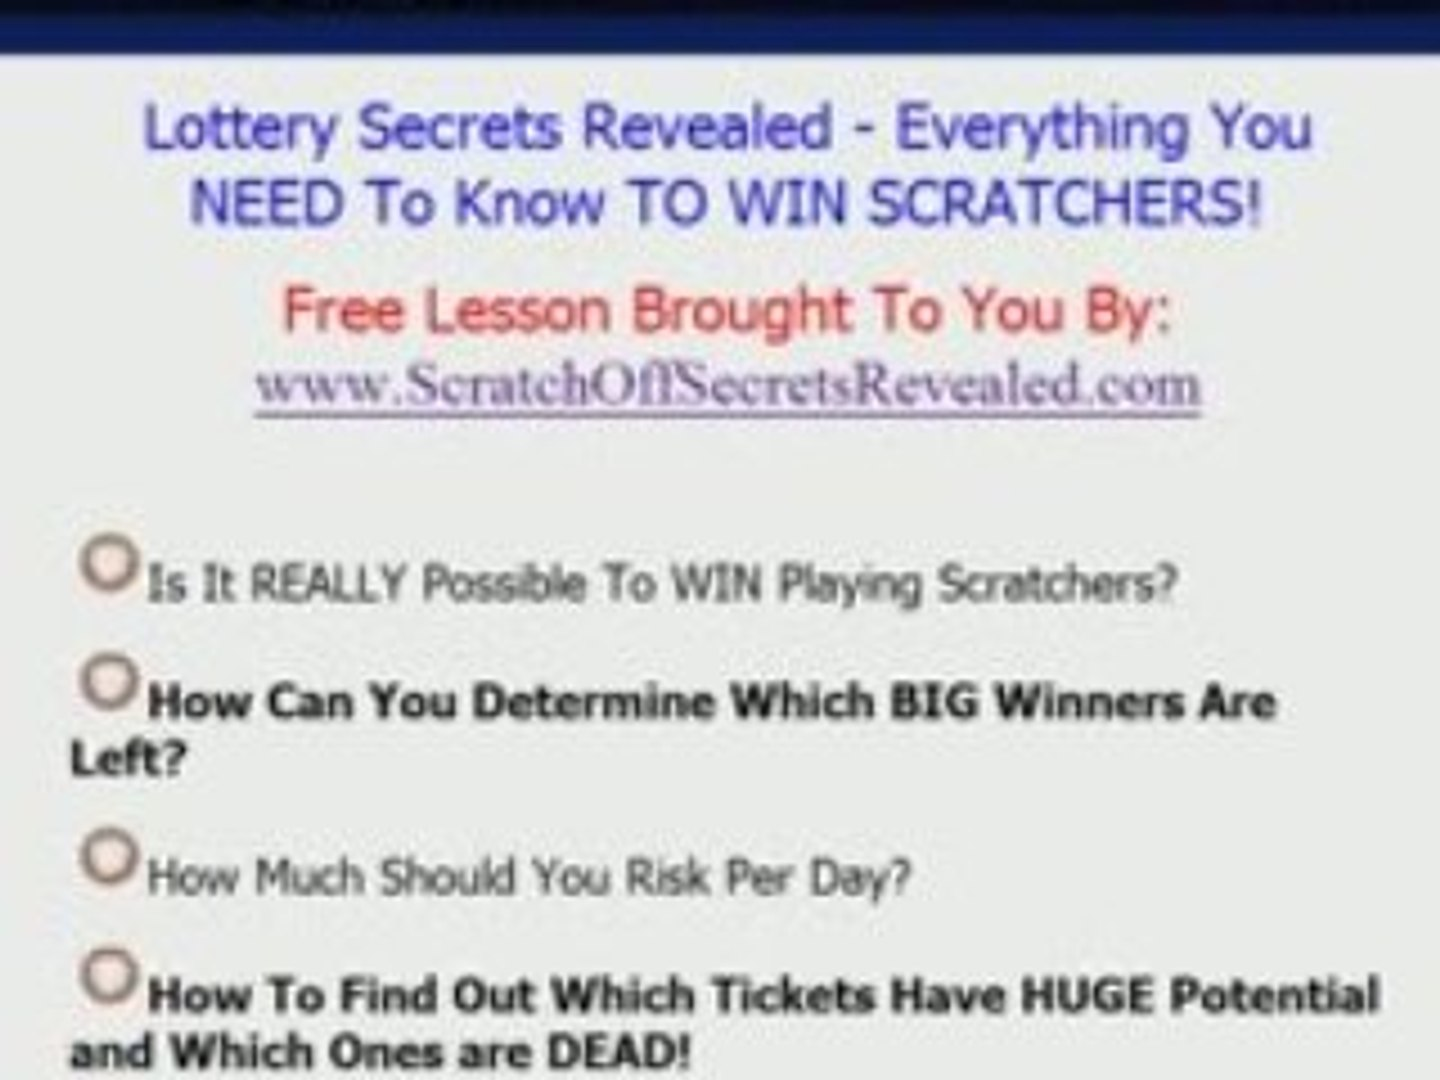 Lottery Secrets Revealed - How To Win Scratchers TODAY!